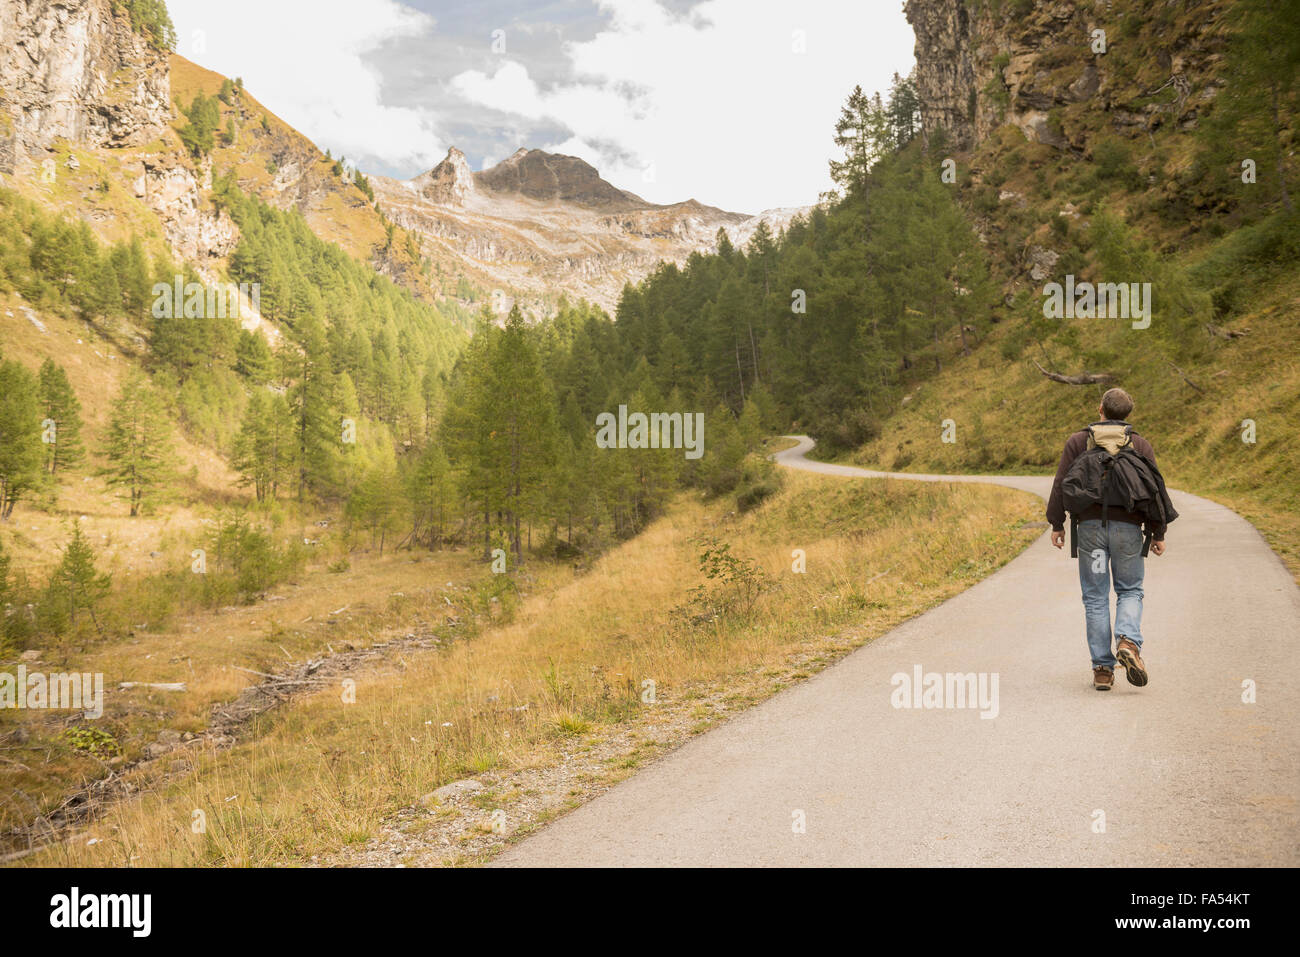 Rear view of mature hiker walking on road, Austrian Alps, Carinthia, Austria - Stock Image